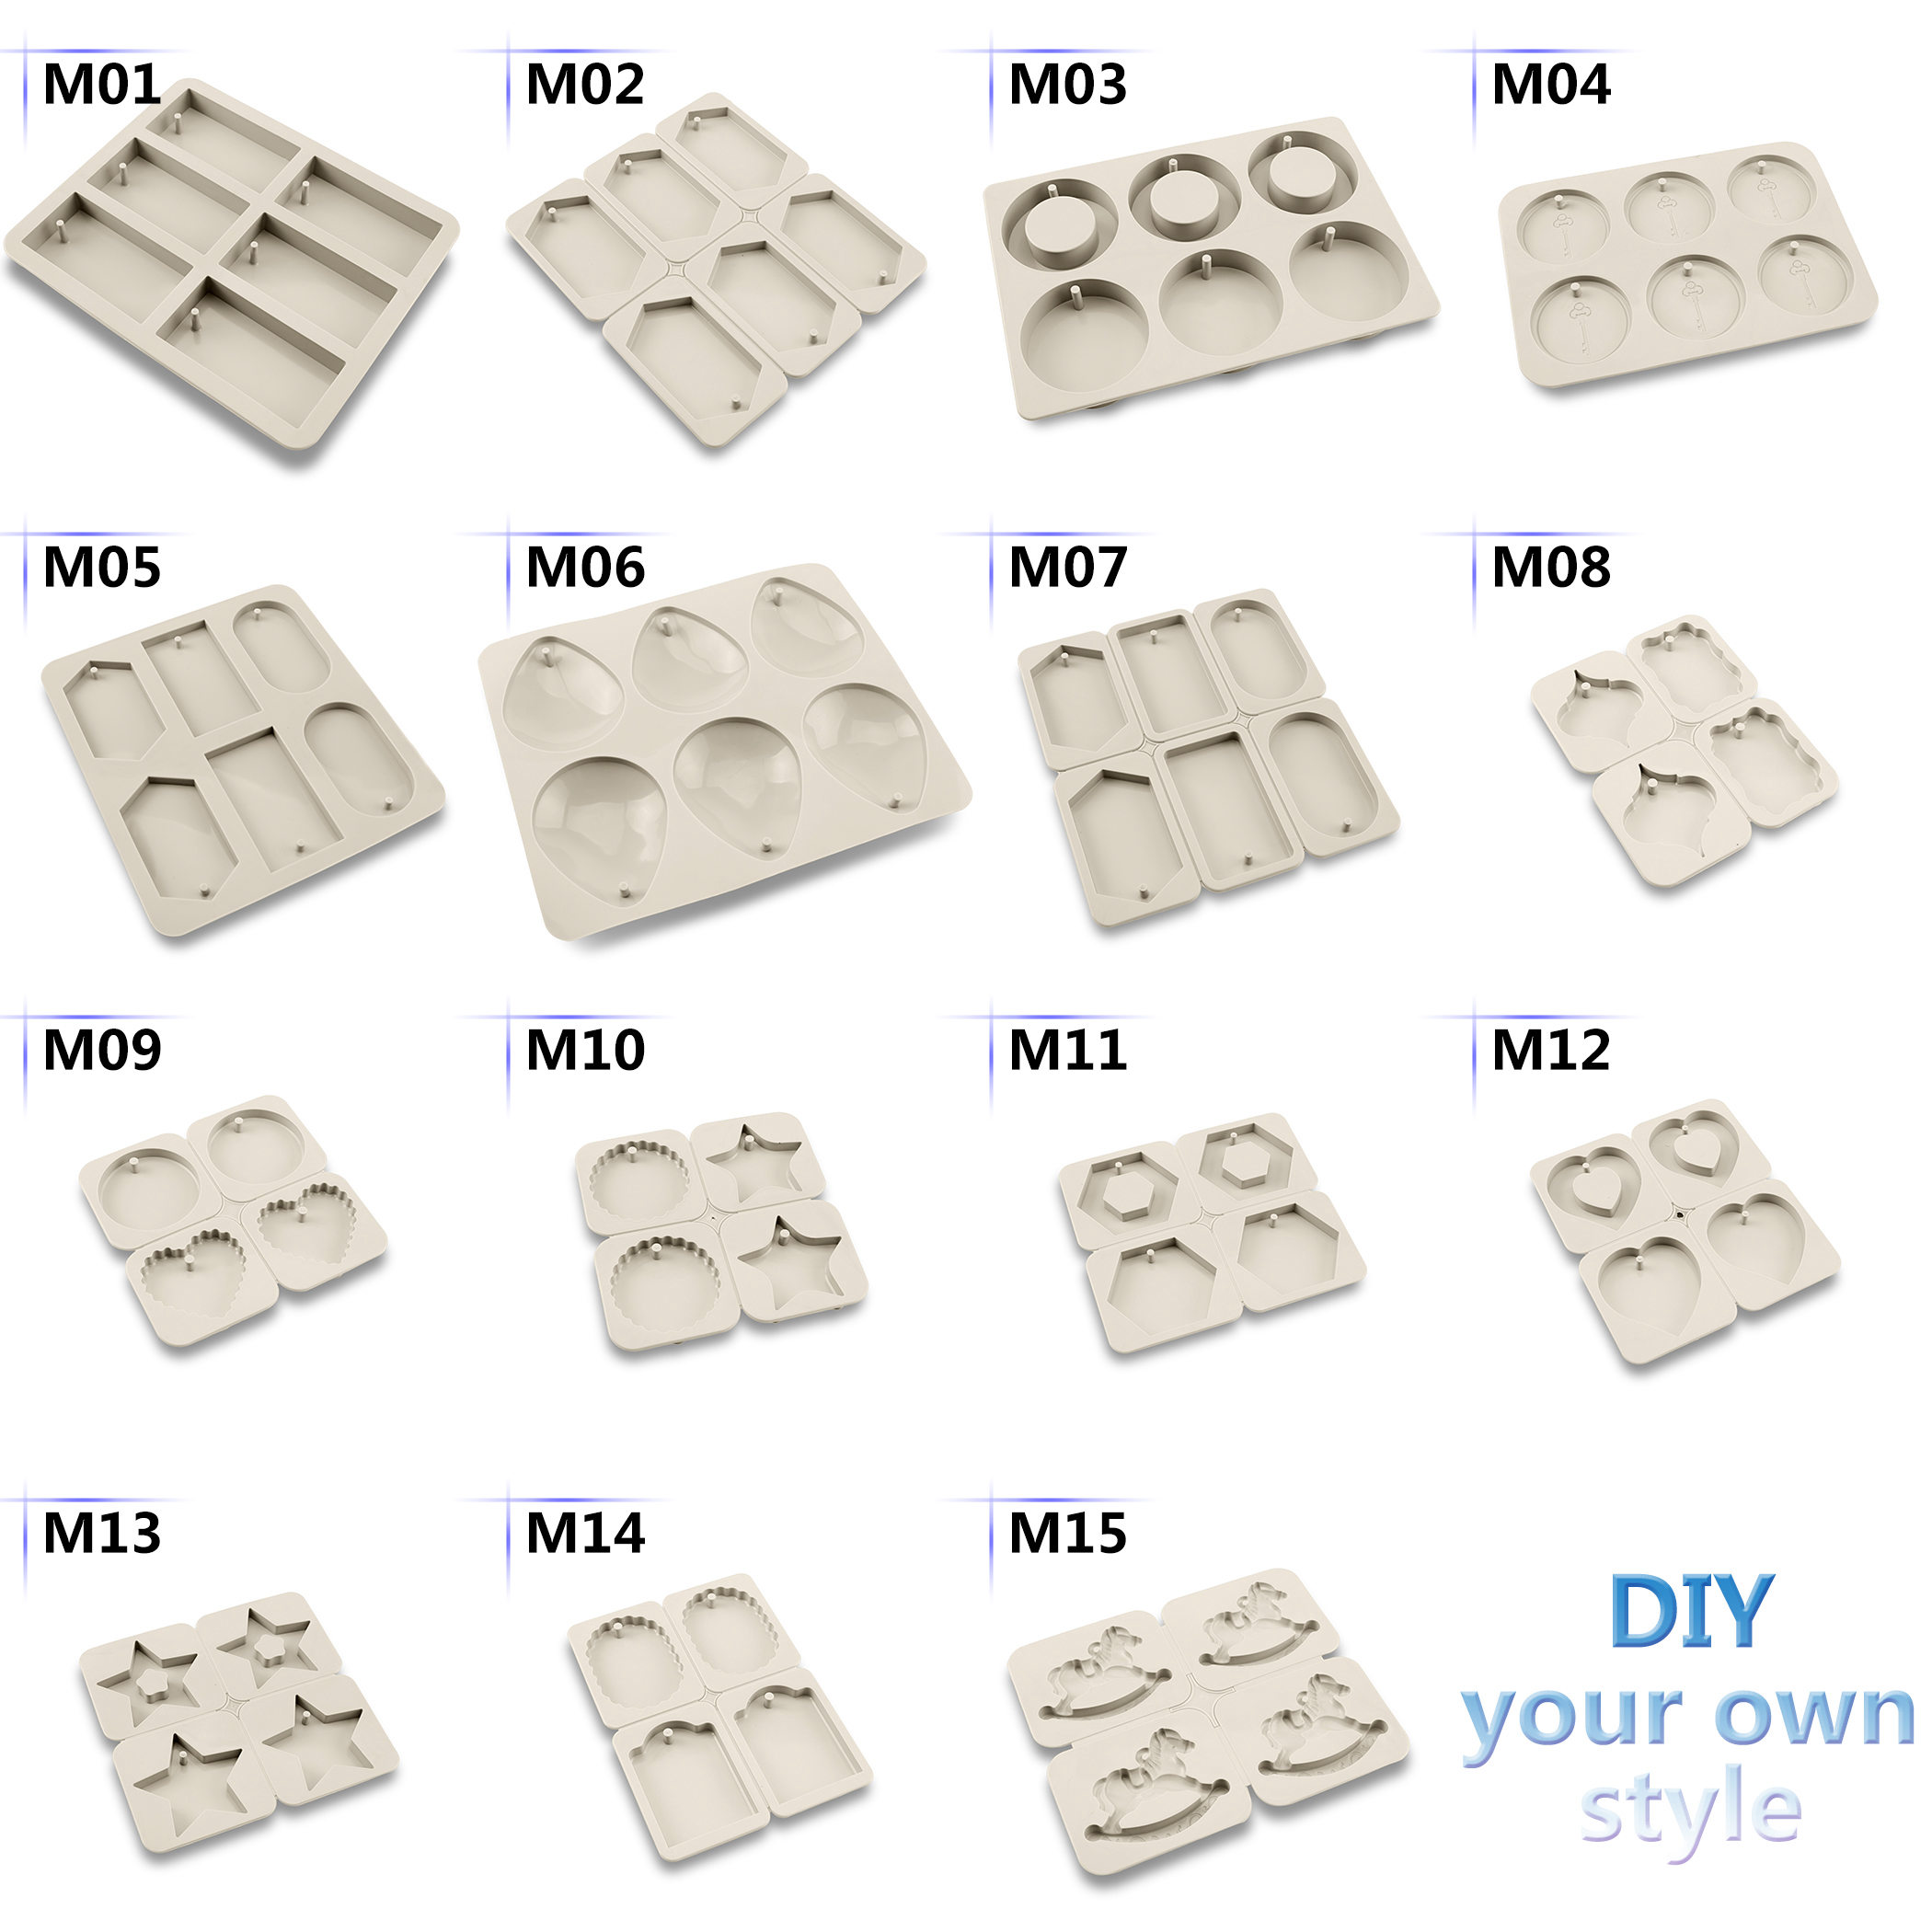 Kinds Silicone Soap Molds Wax Resin Mould Plaster Clay Fondant Cake DIY Hand Making